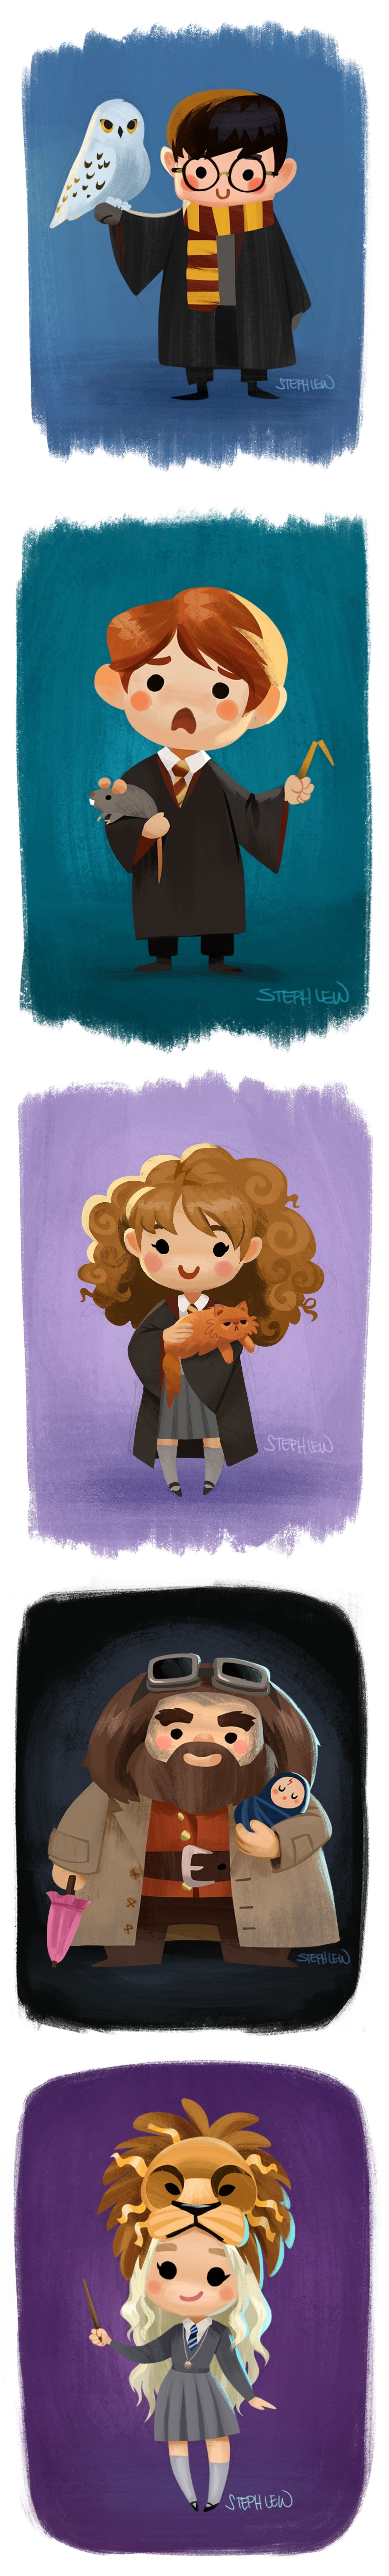 Harry Potter And Hedwig Ron Scabbers Hermione Crookshanks Hagrid Baby Lion Luna Lovegood